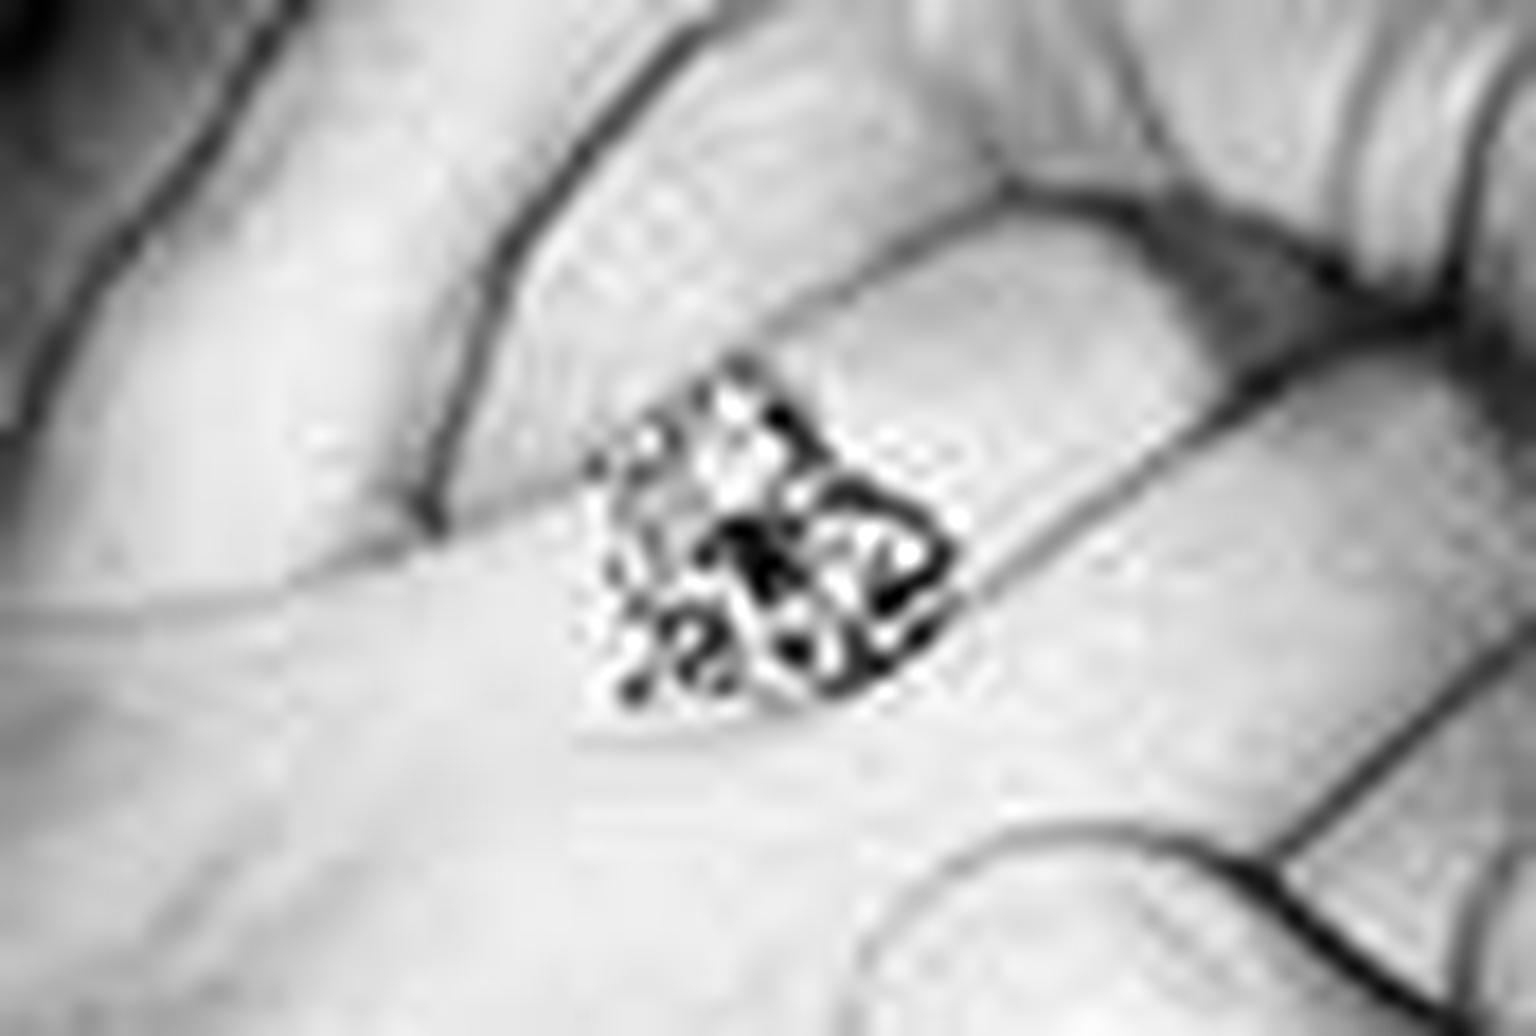 Lady Gaga engagement ring NL